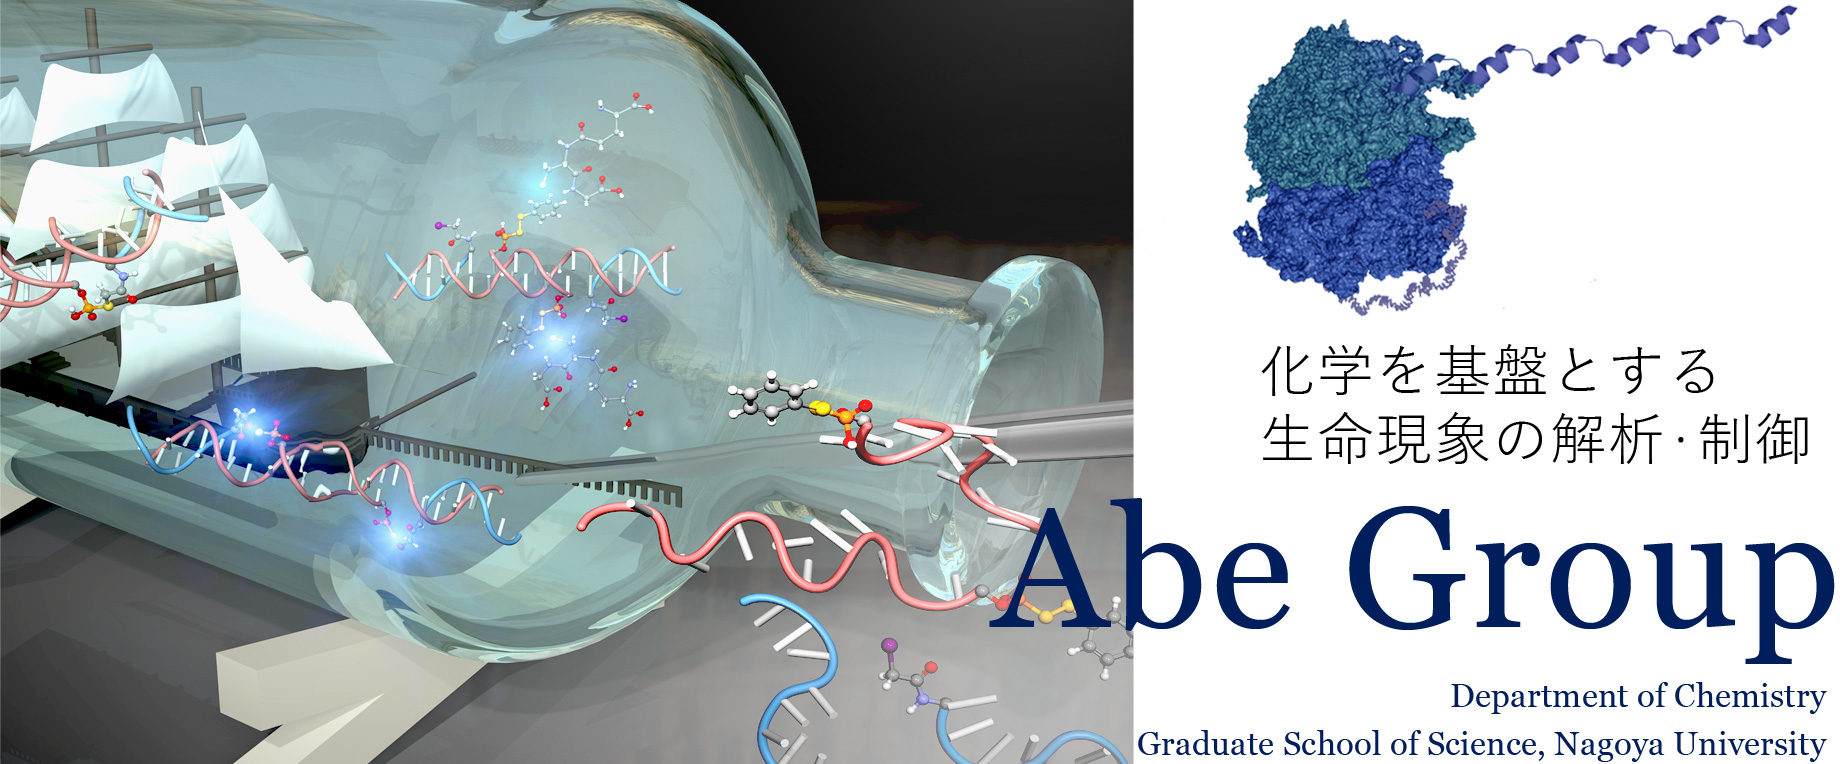 化学を基盤とする生命現象の解析・制御 Abe Group, Department of Chemistry, Graduate School of Science, Nagoya University